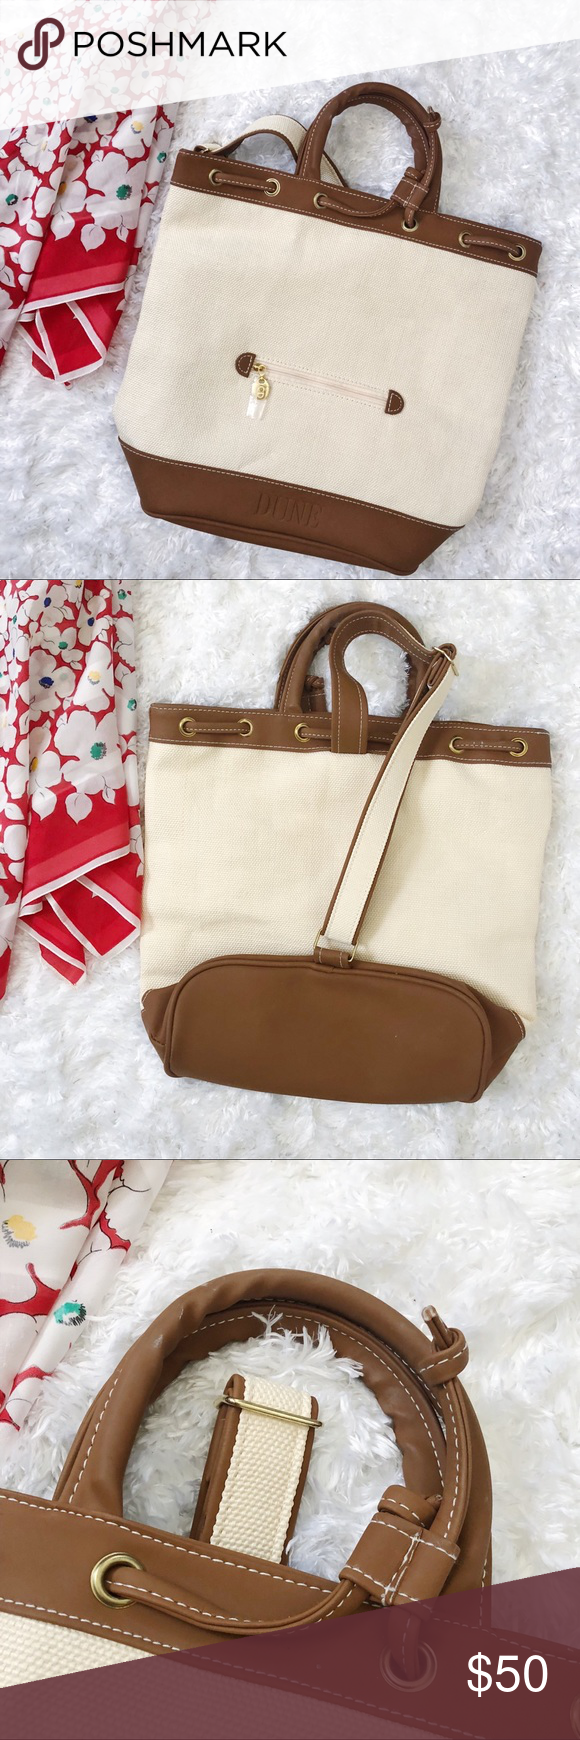 Christian Dior Parfum Dune Canvas Sac Backpack Bag Canvas and faux Cognac  leather bag with gold 47cc0cfa65